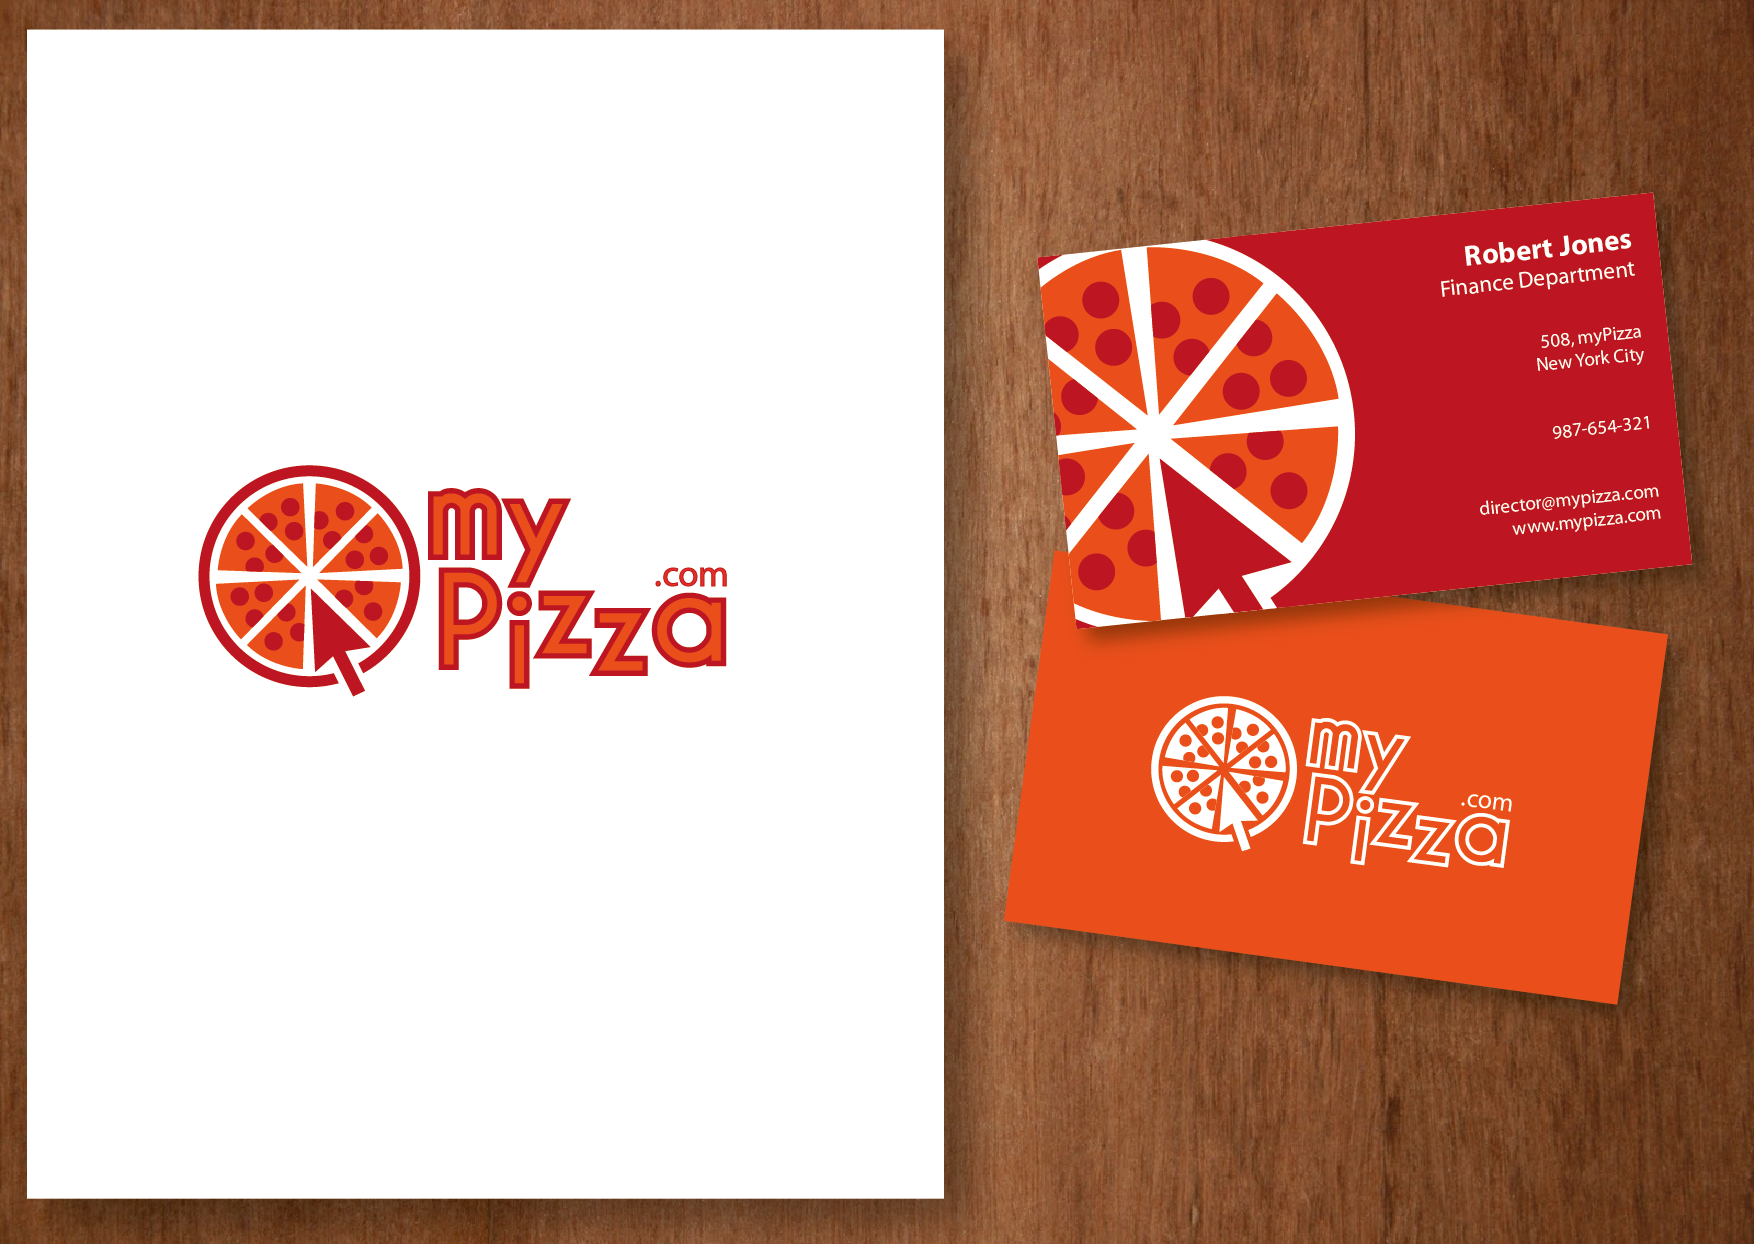 My Pizza Logo Design Print And Business Cards